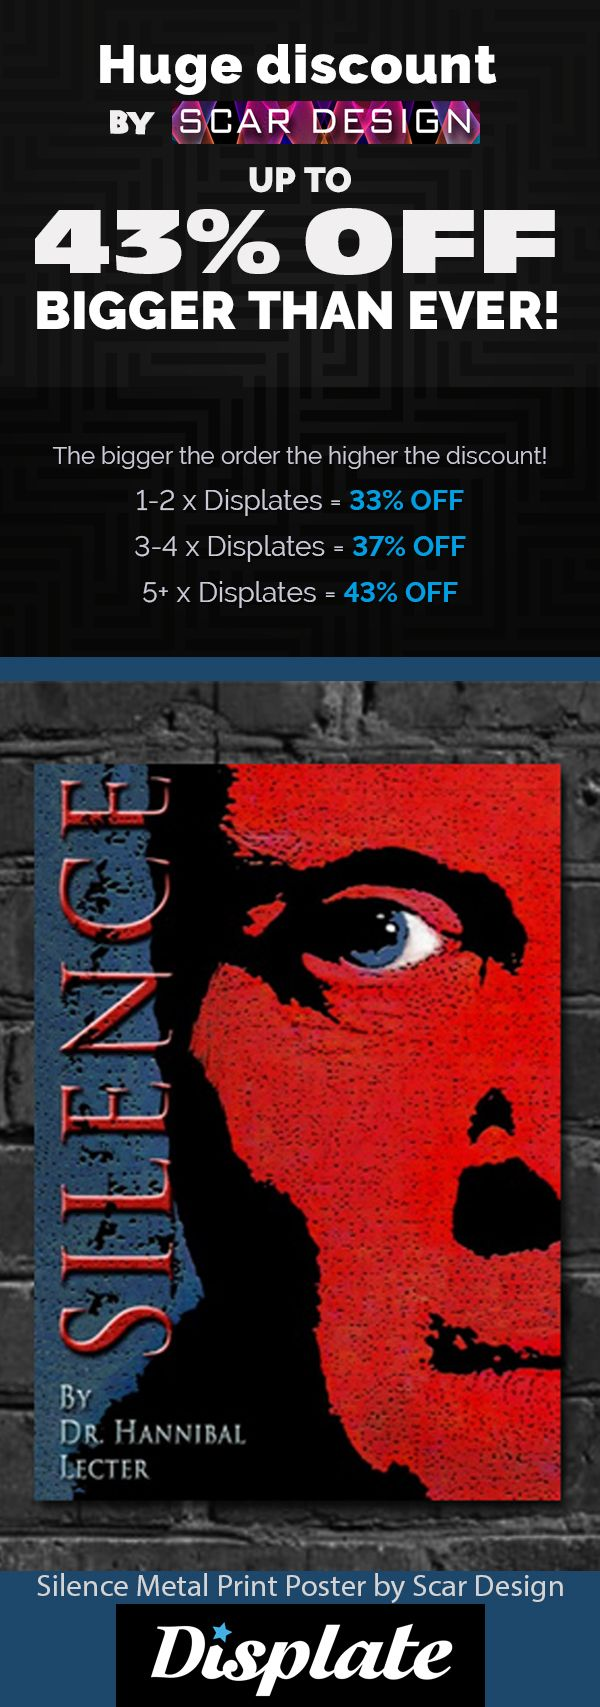 43% OFF METAL PRINT POSTERS! Movie & Gaming Posters on Metal Prints. The Silence of the Lambs Poster by Scar Design #poster #displate #homedecor #style #family #thesilenceofthelambs #movieposter #onlineshopping #shopping #sales #discount #save #movies #film #cinema #bookposter  #art #thanksgivinggifts #christmasgifts #buymovieposters